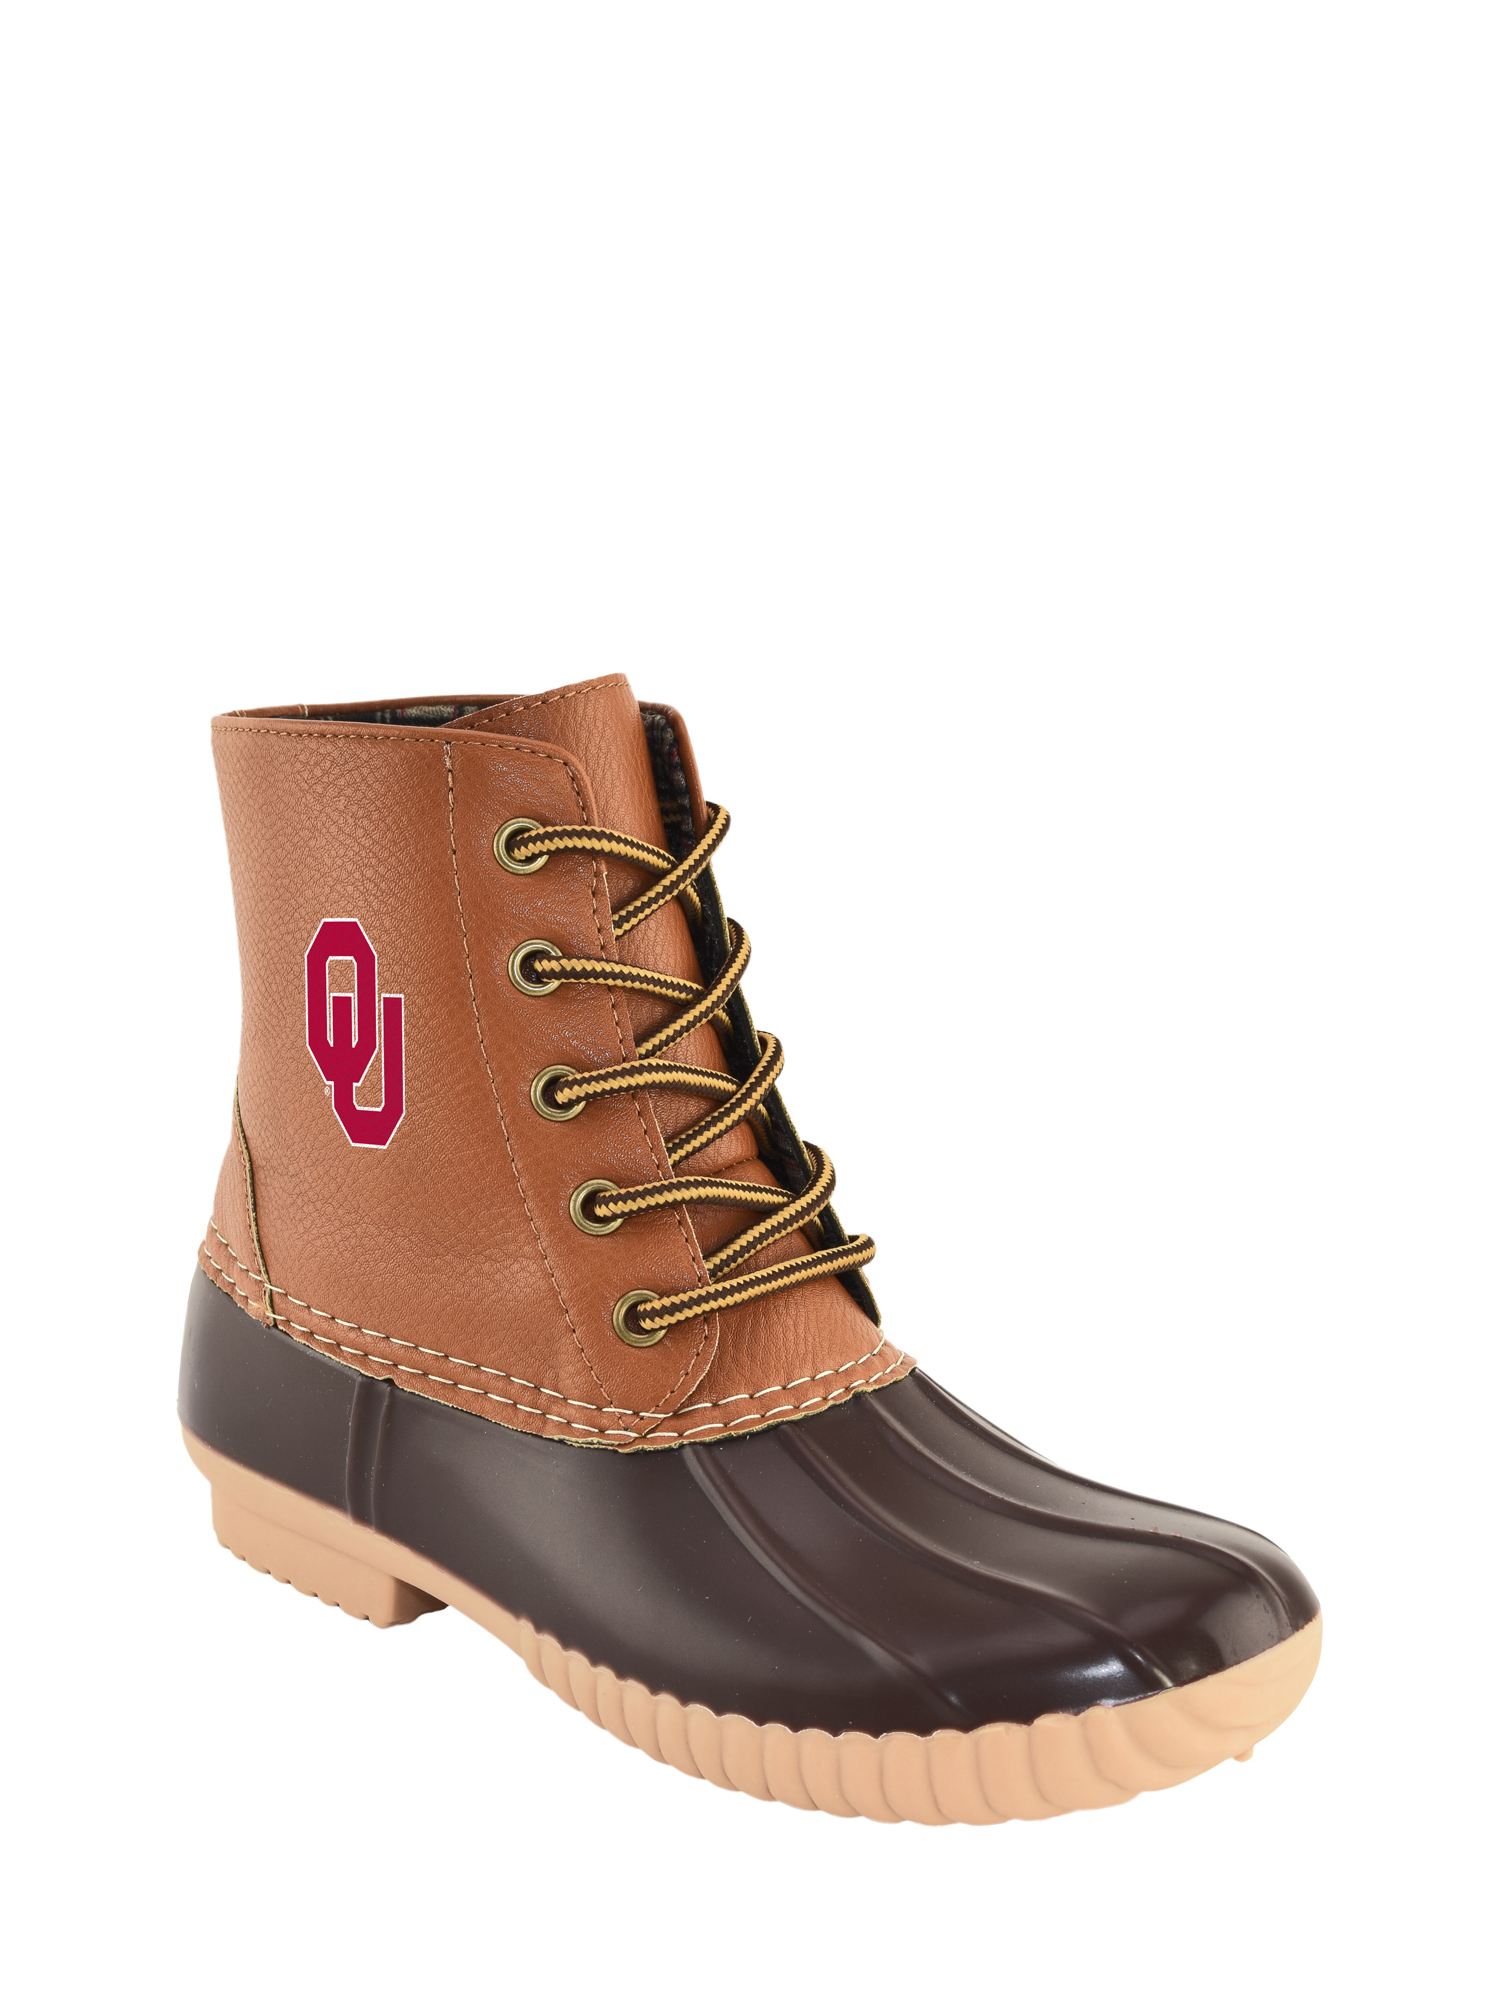 NCAA Women's Oklahoma -High Duck Boot